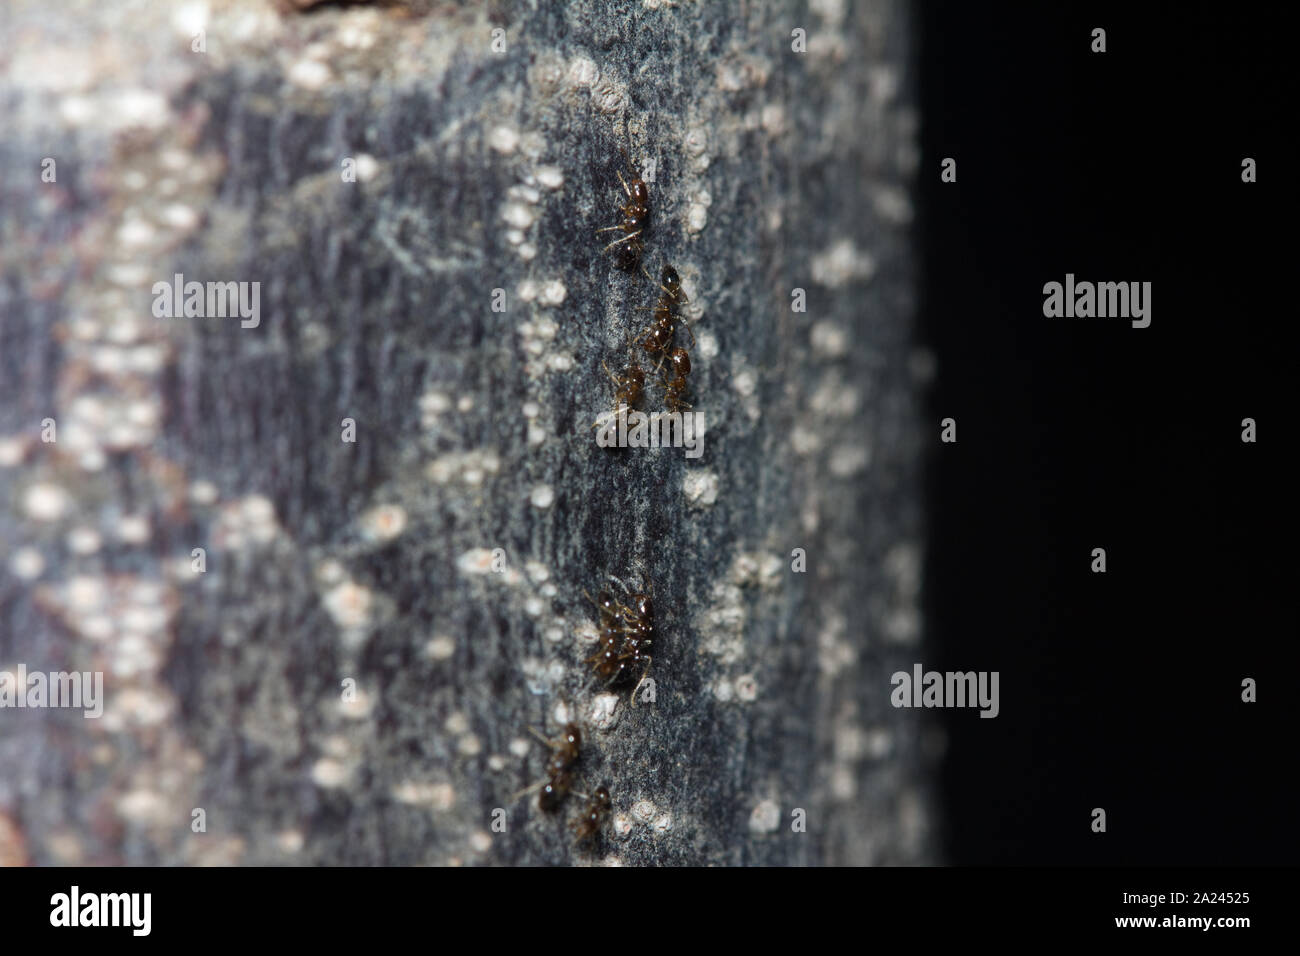 black ants crawling on tree trunk in the dark Stock Photo